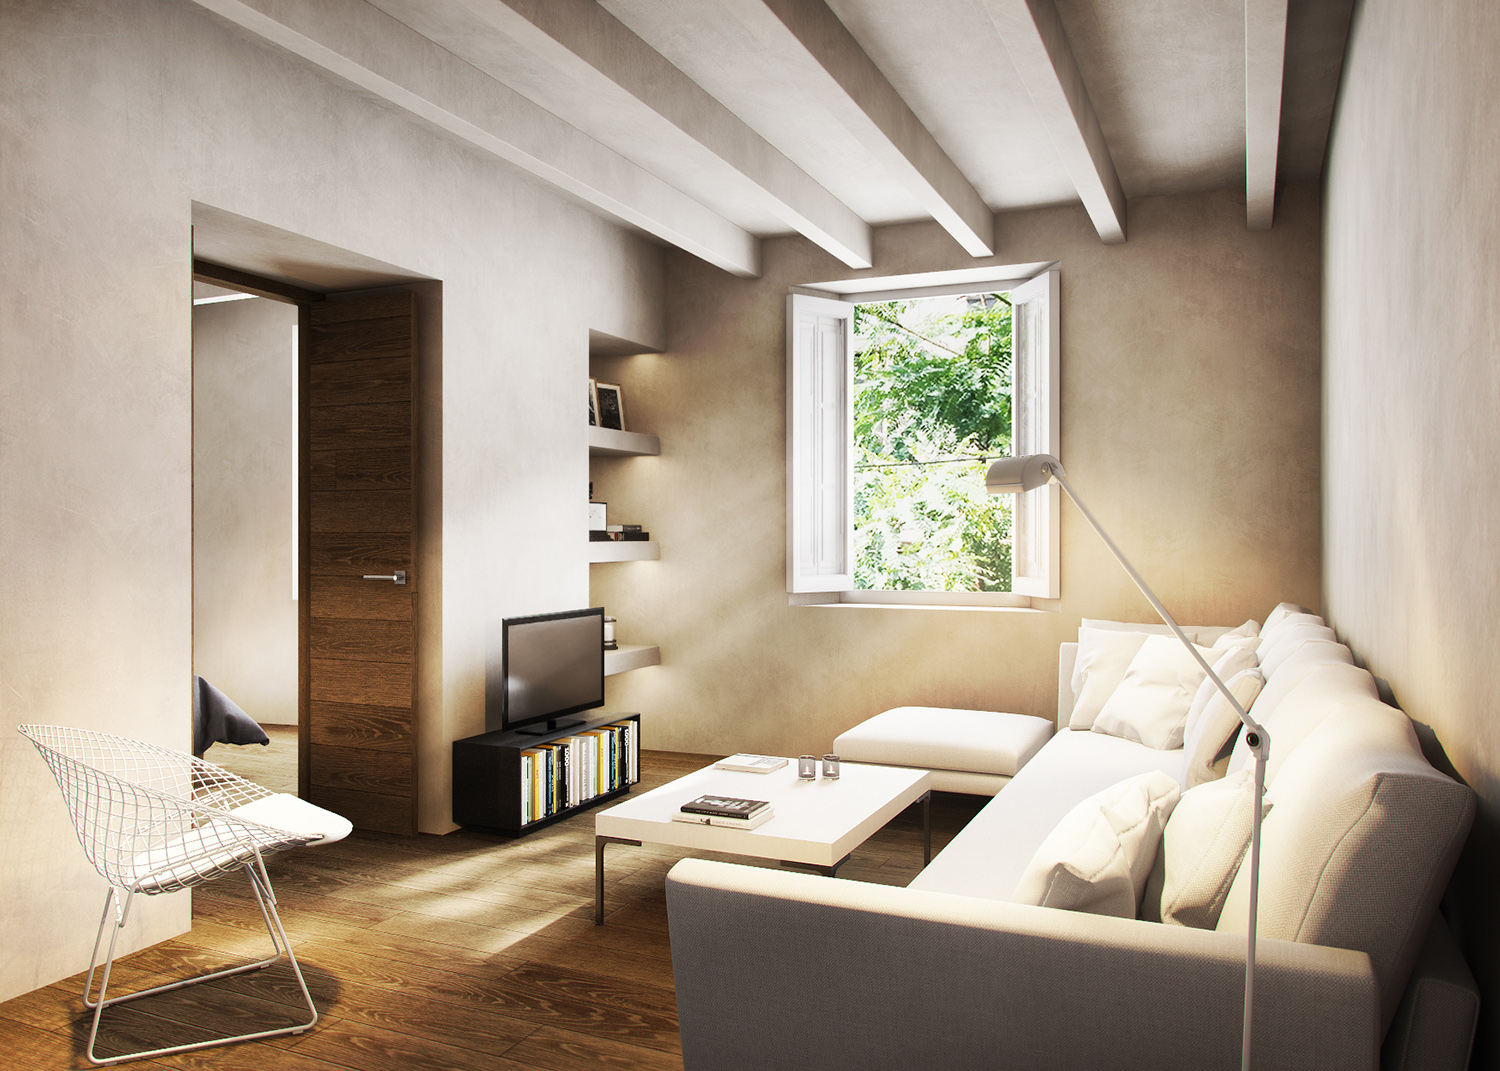 3D RENDER OF A FLAT IN BARCELONA